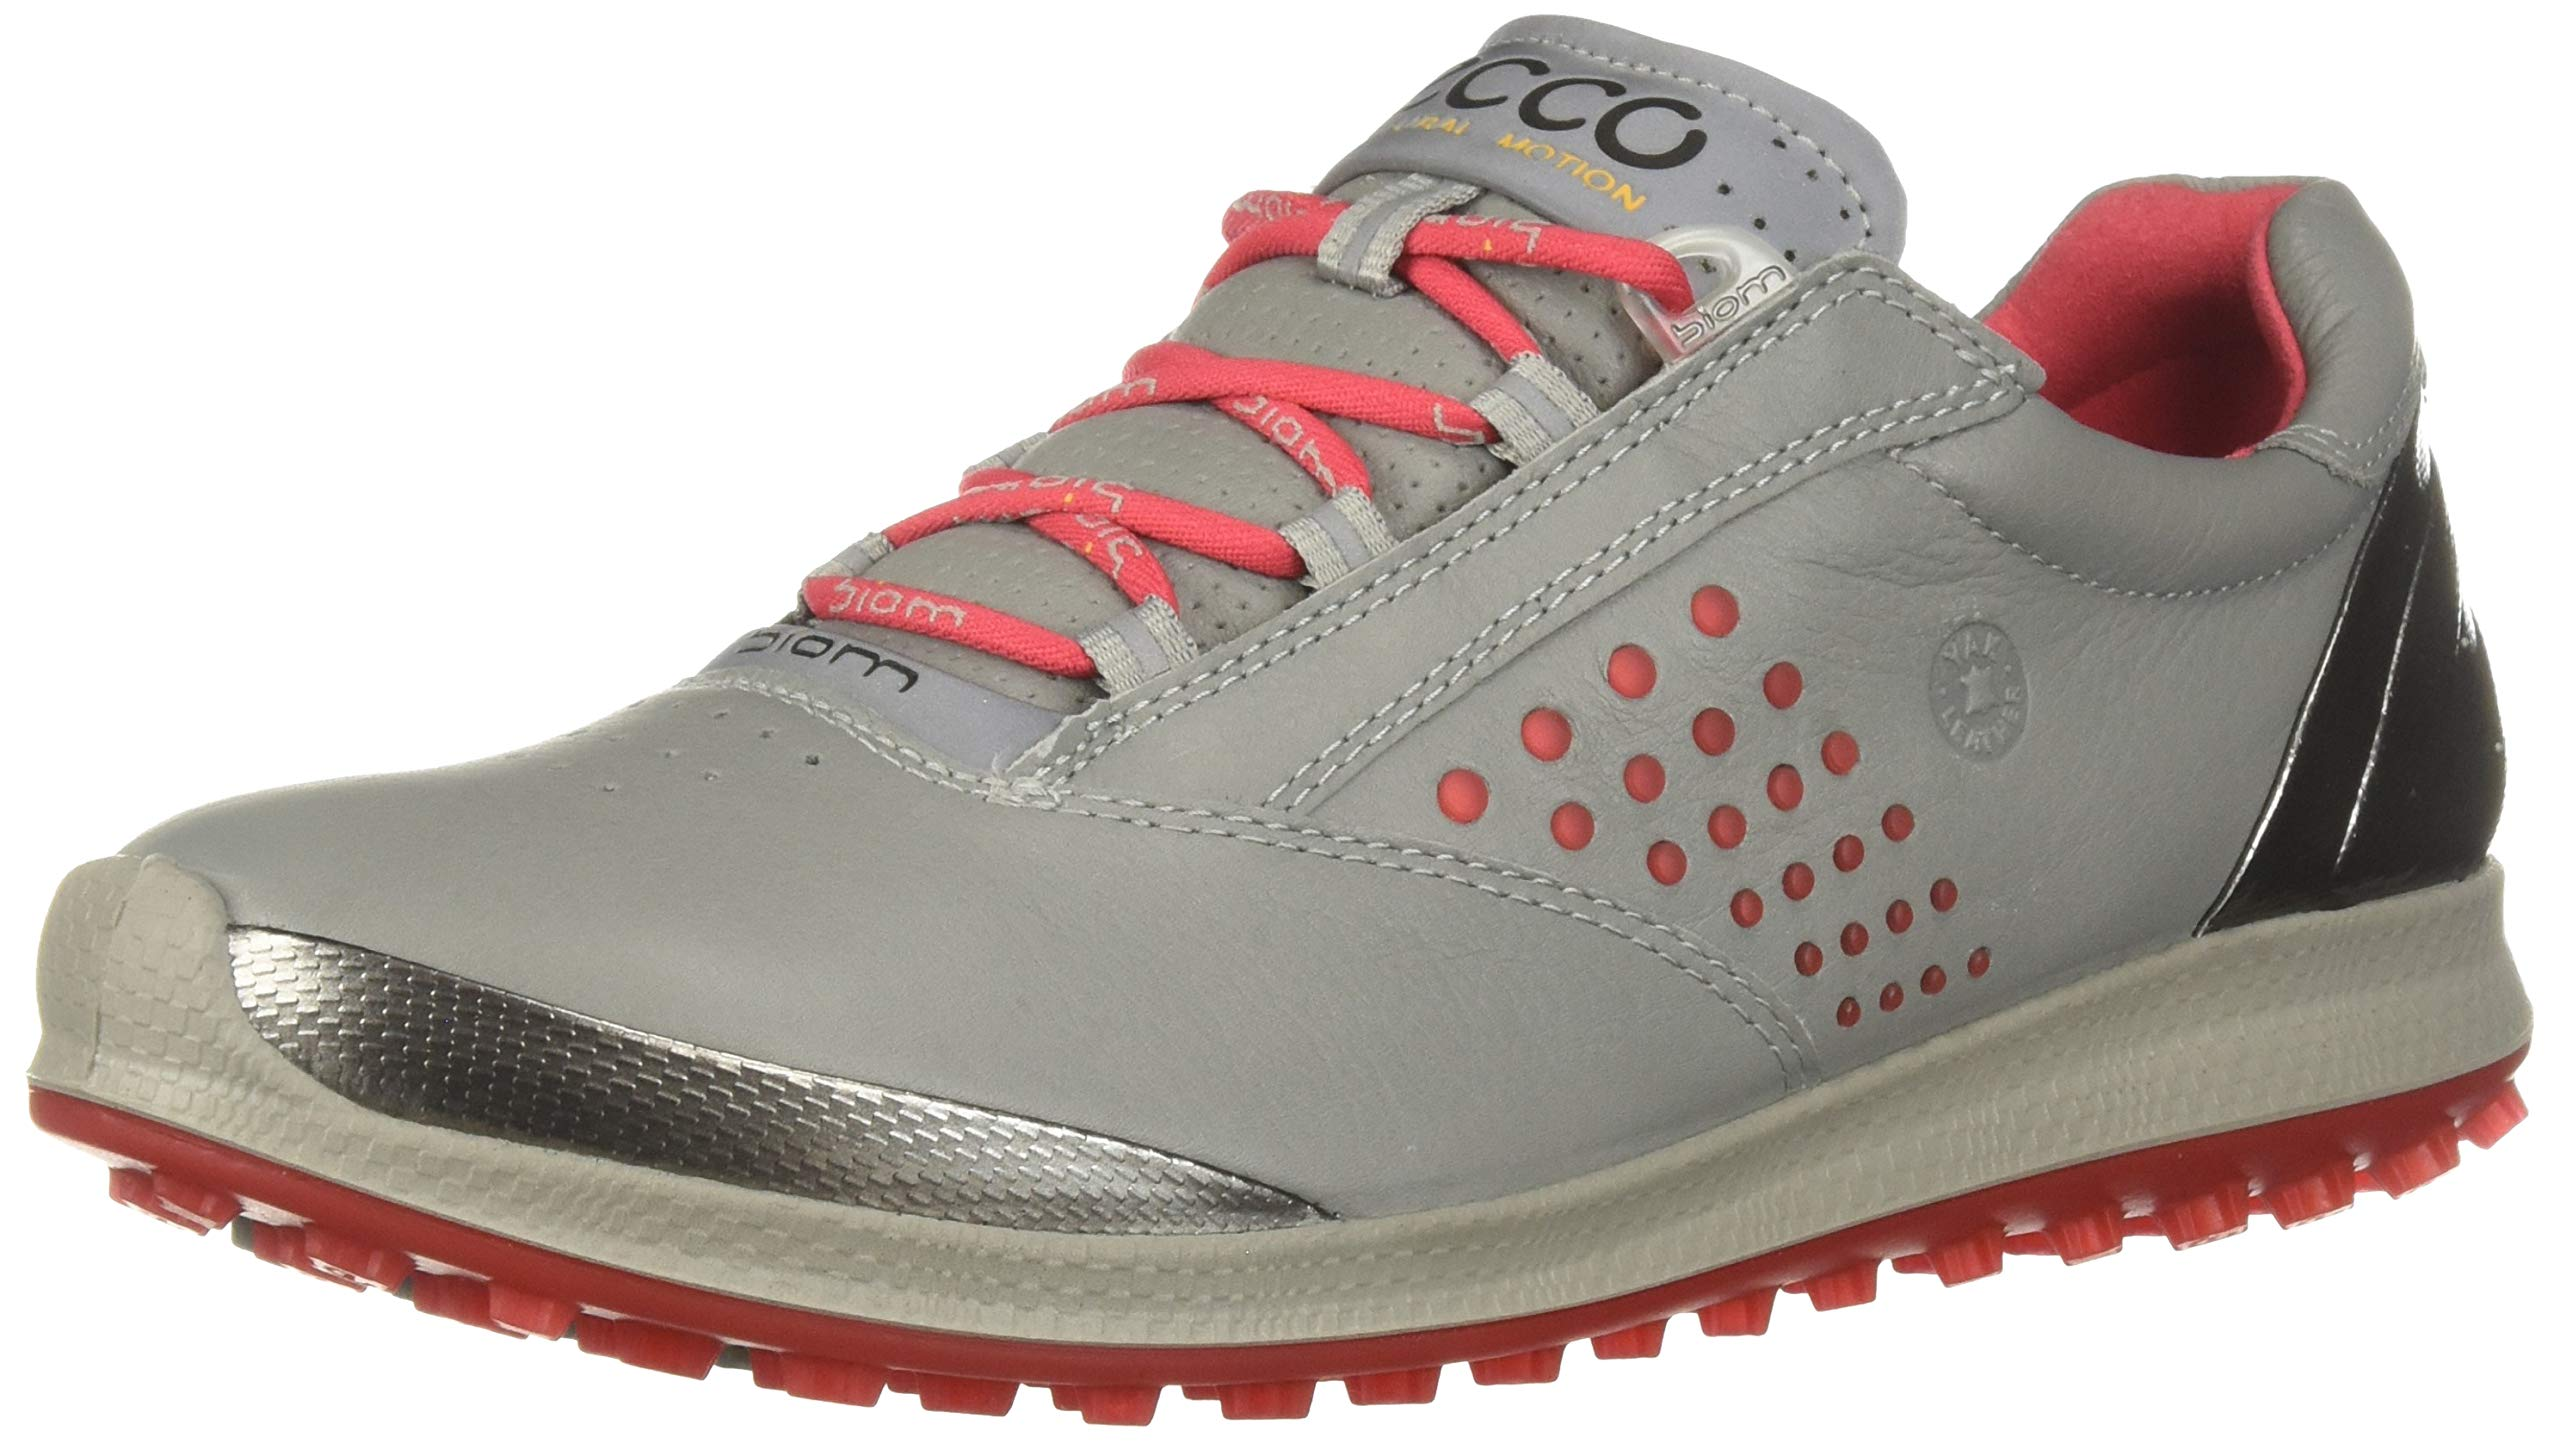 ECCO Women's Biom Hybrid 2 Golf Shoe, Wild Dove Yak Leather, 10 M US by ECCO